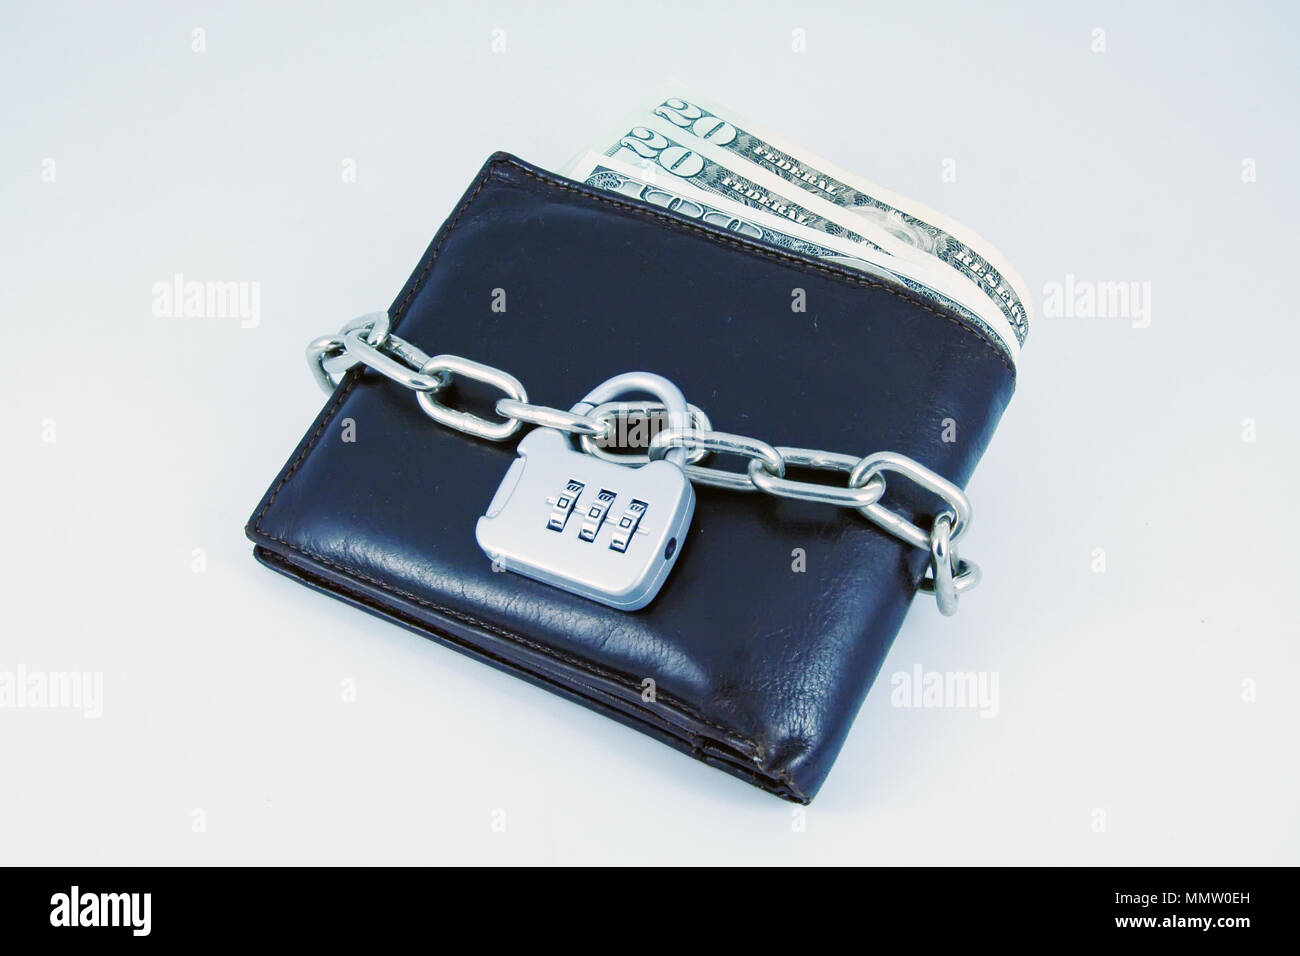 4b866ee37fde Chain Lock Purse Stock Photos & Chain Lock Purse Stock Images - Alamy